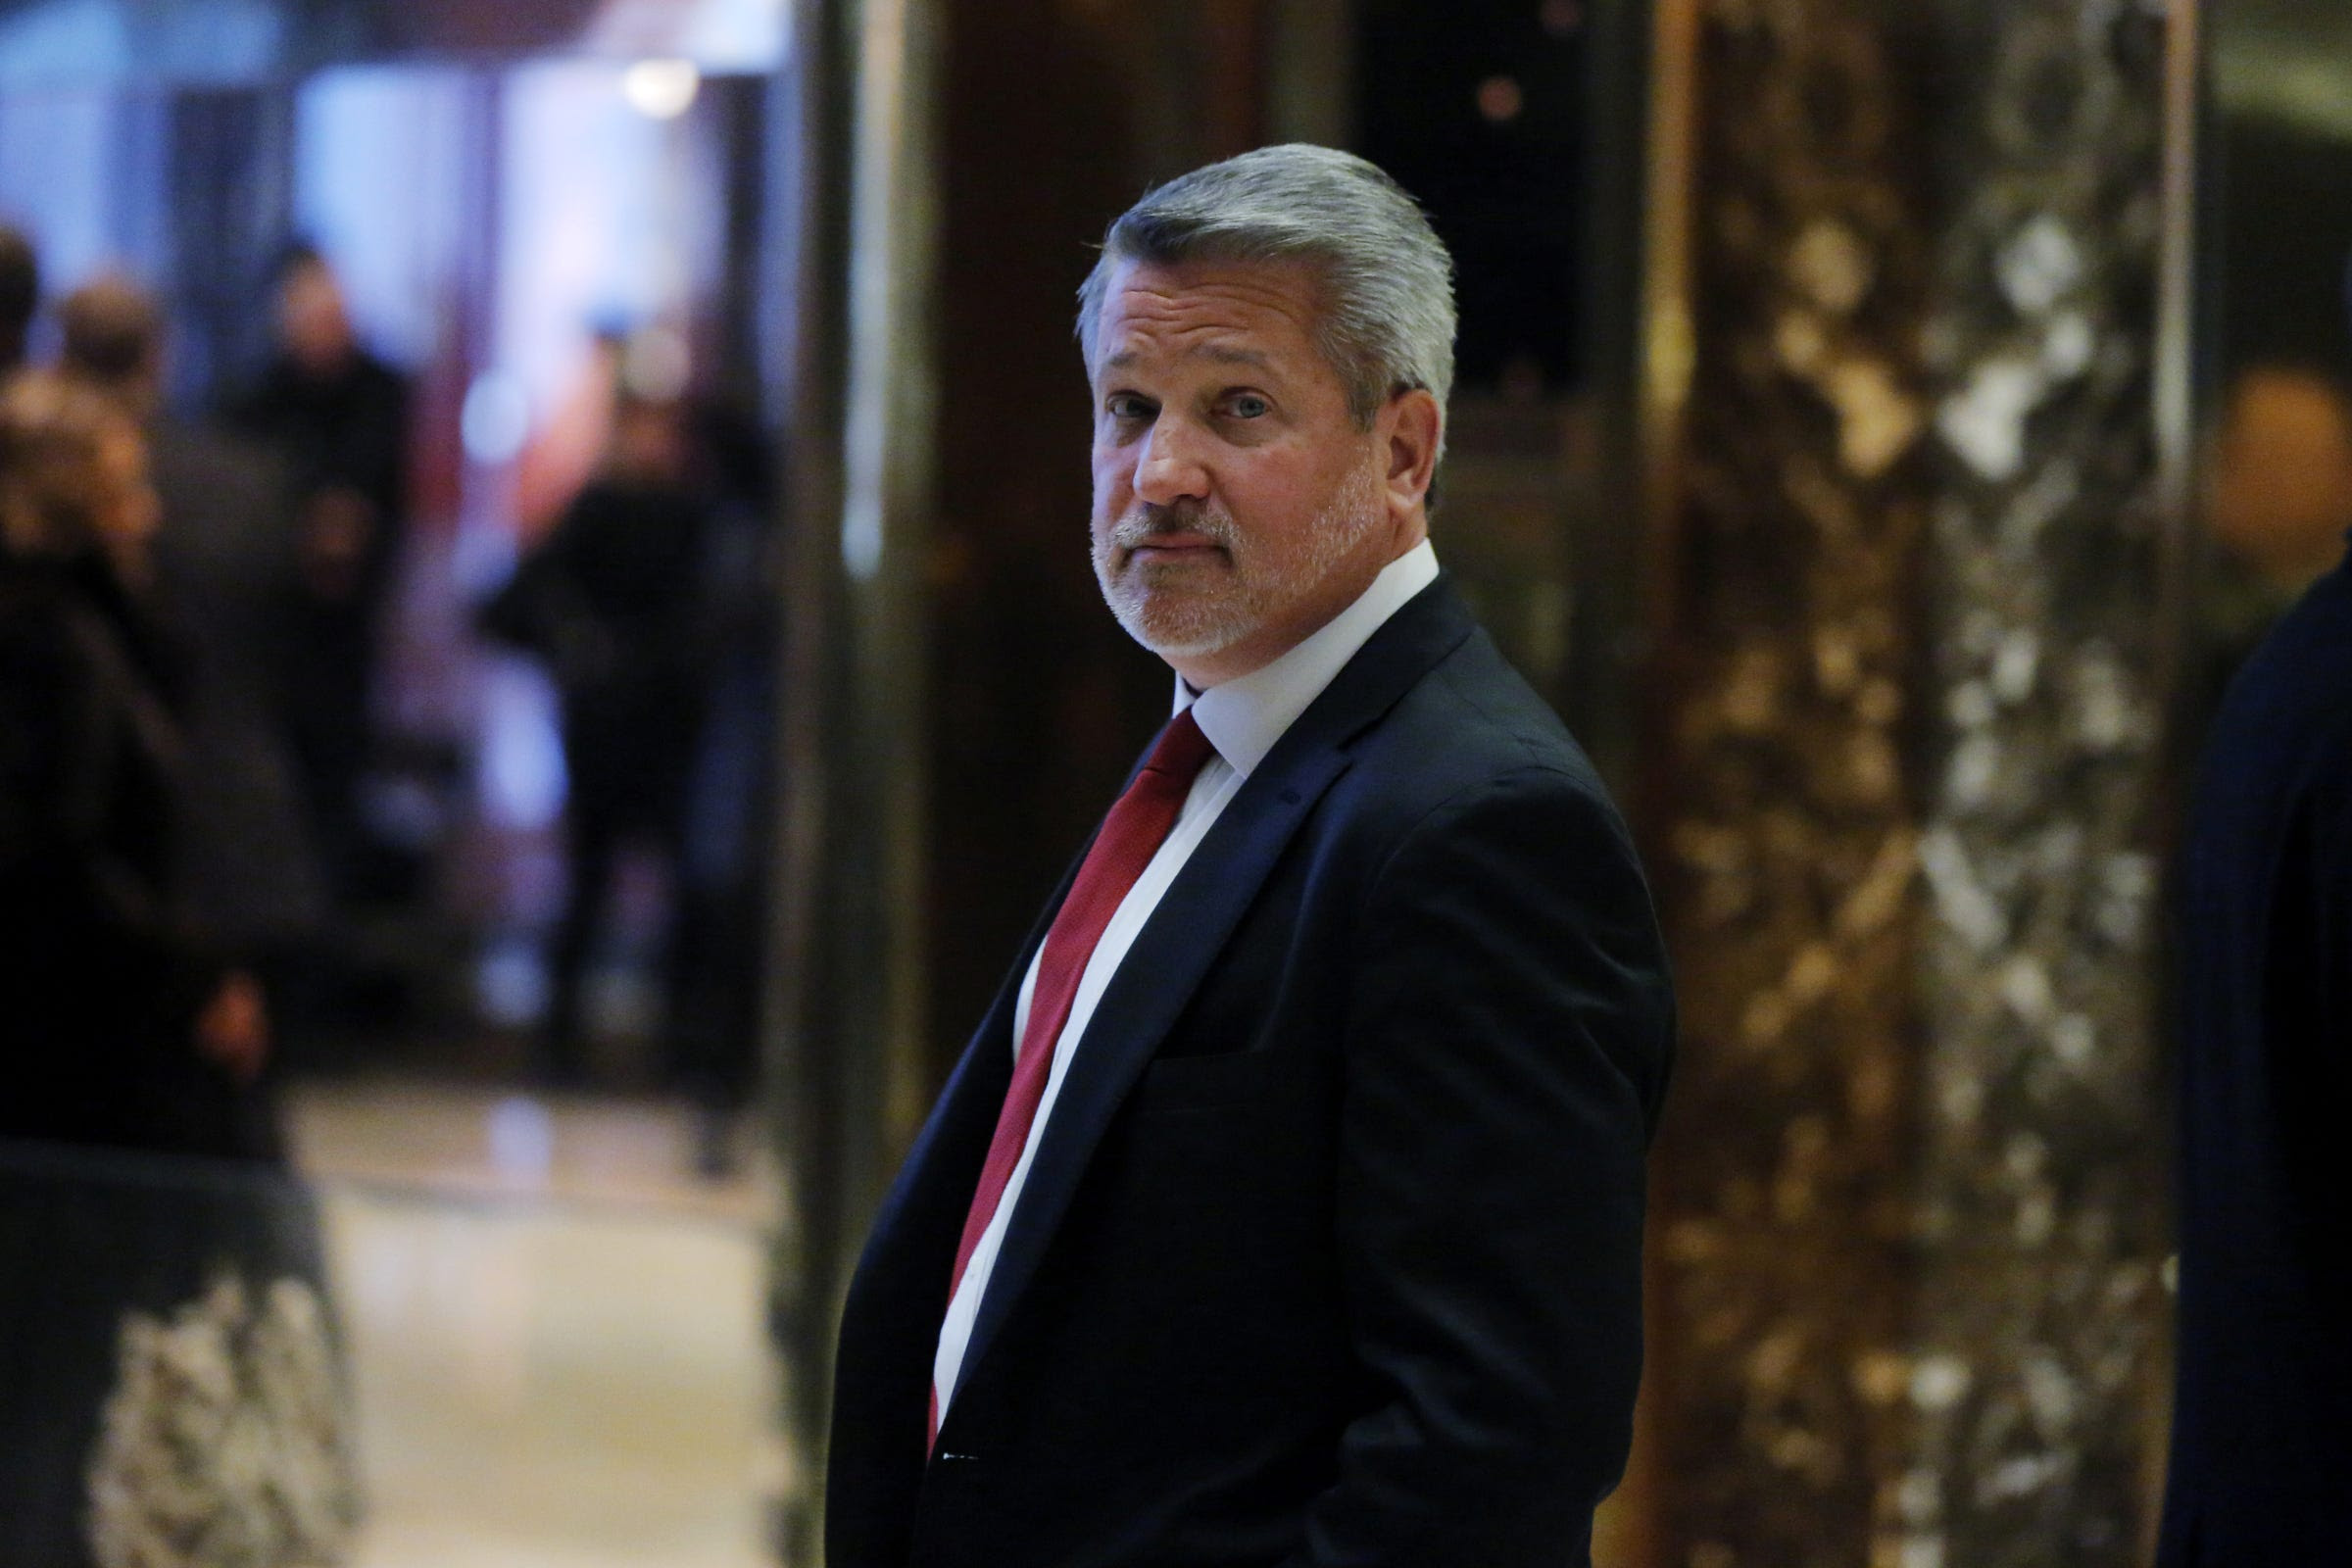 Fox News President Bill Shine departs after meeting with U.S. President-elect Donald Trump at Trump Tower in the Manhattan borough of New York, U.S., November 21, 2016.